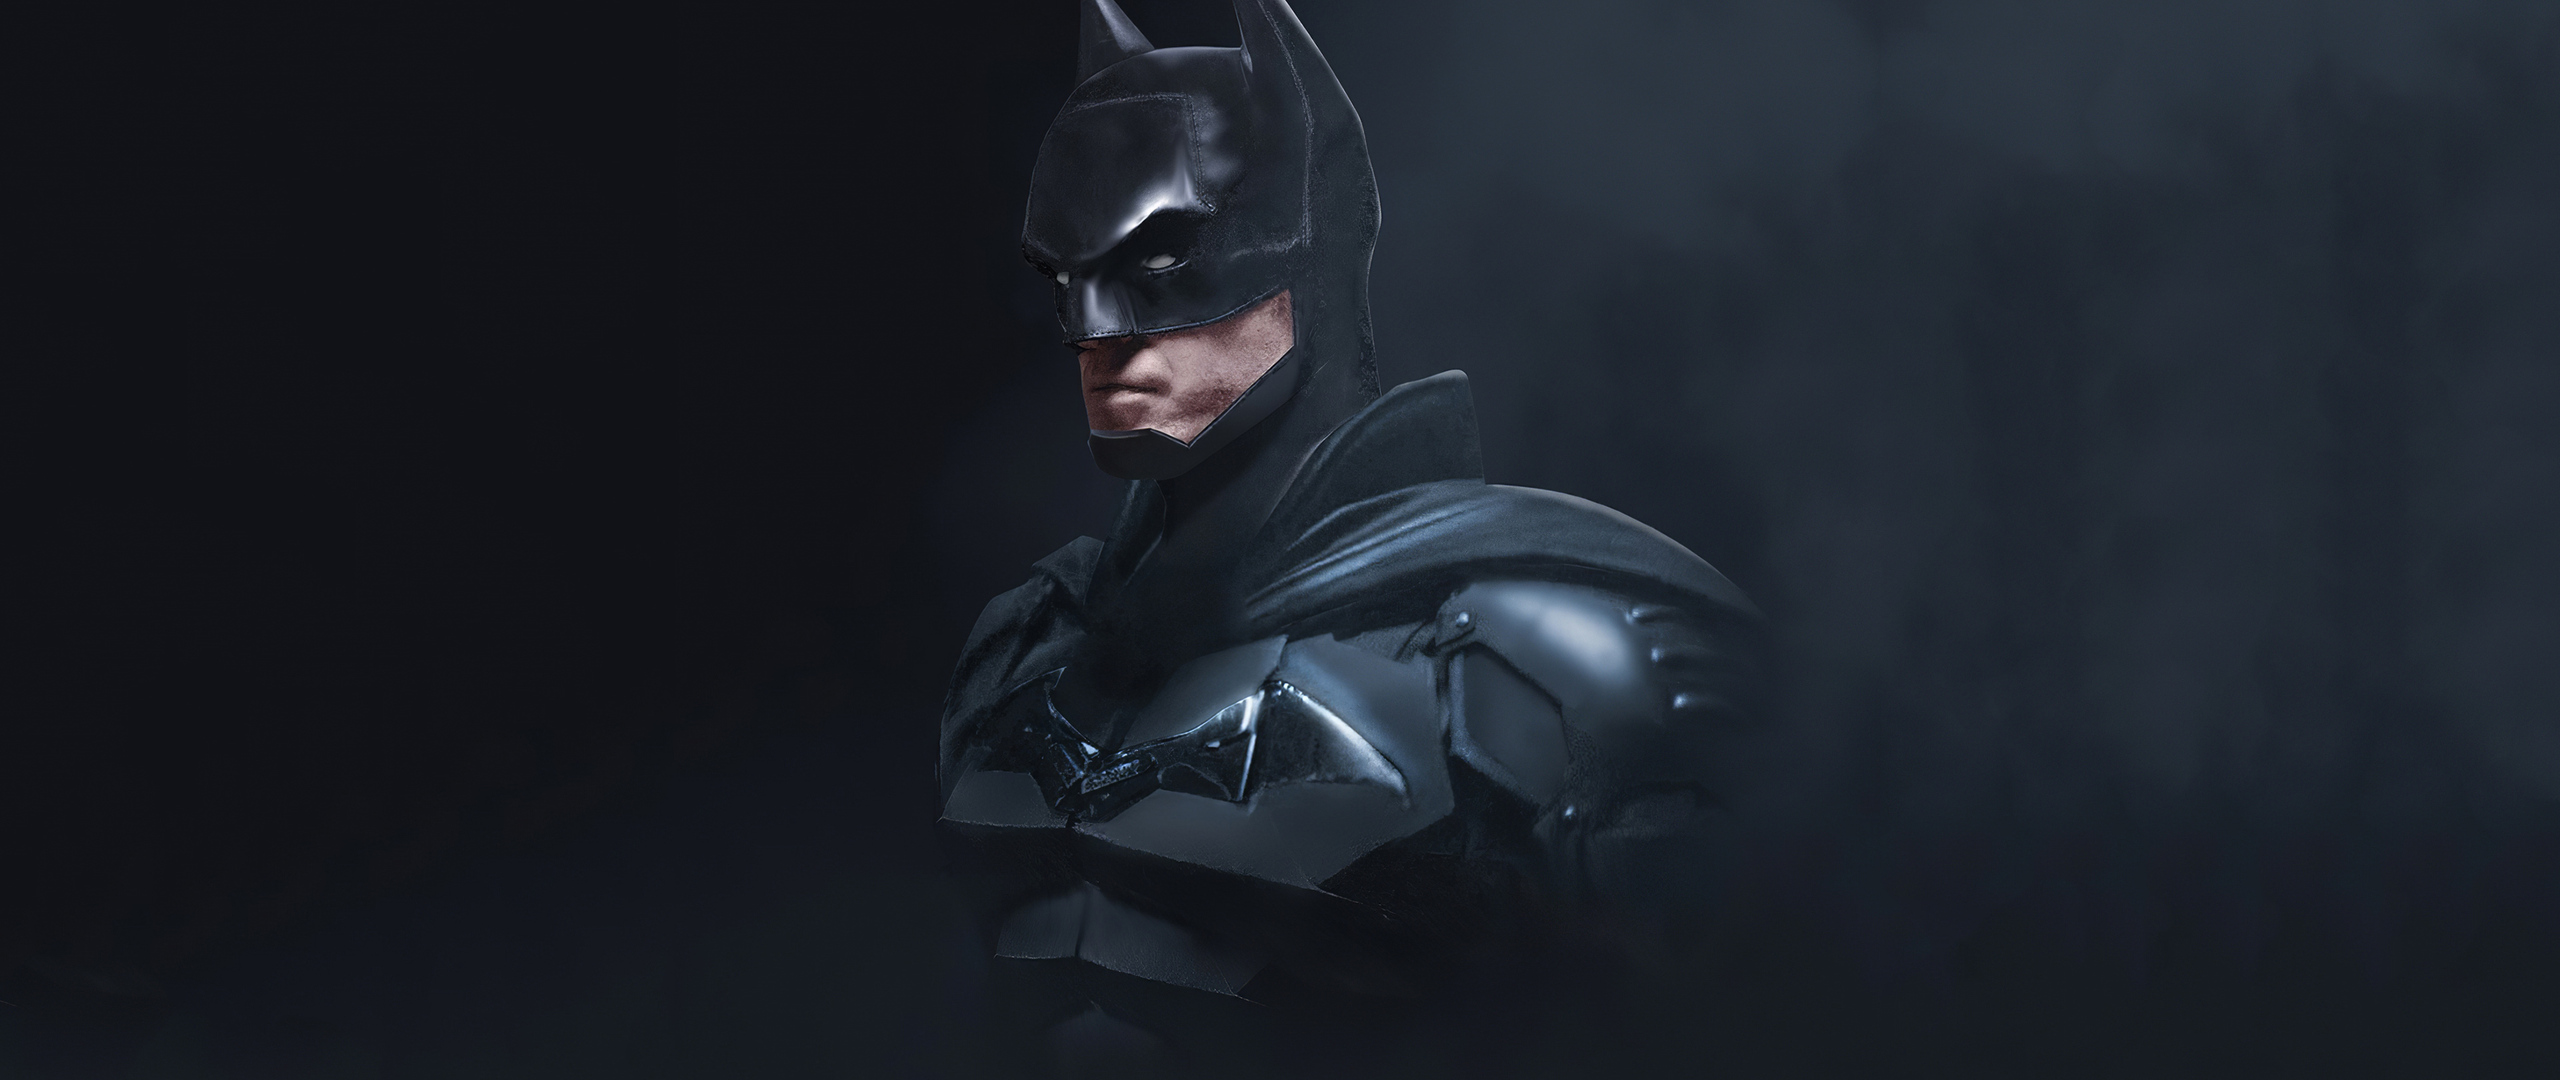 batman-new-suit-2020-p1.jpg